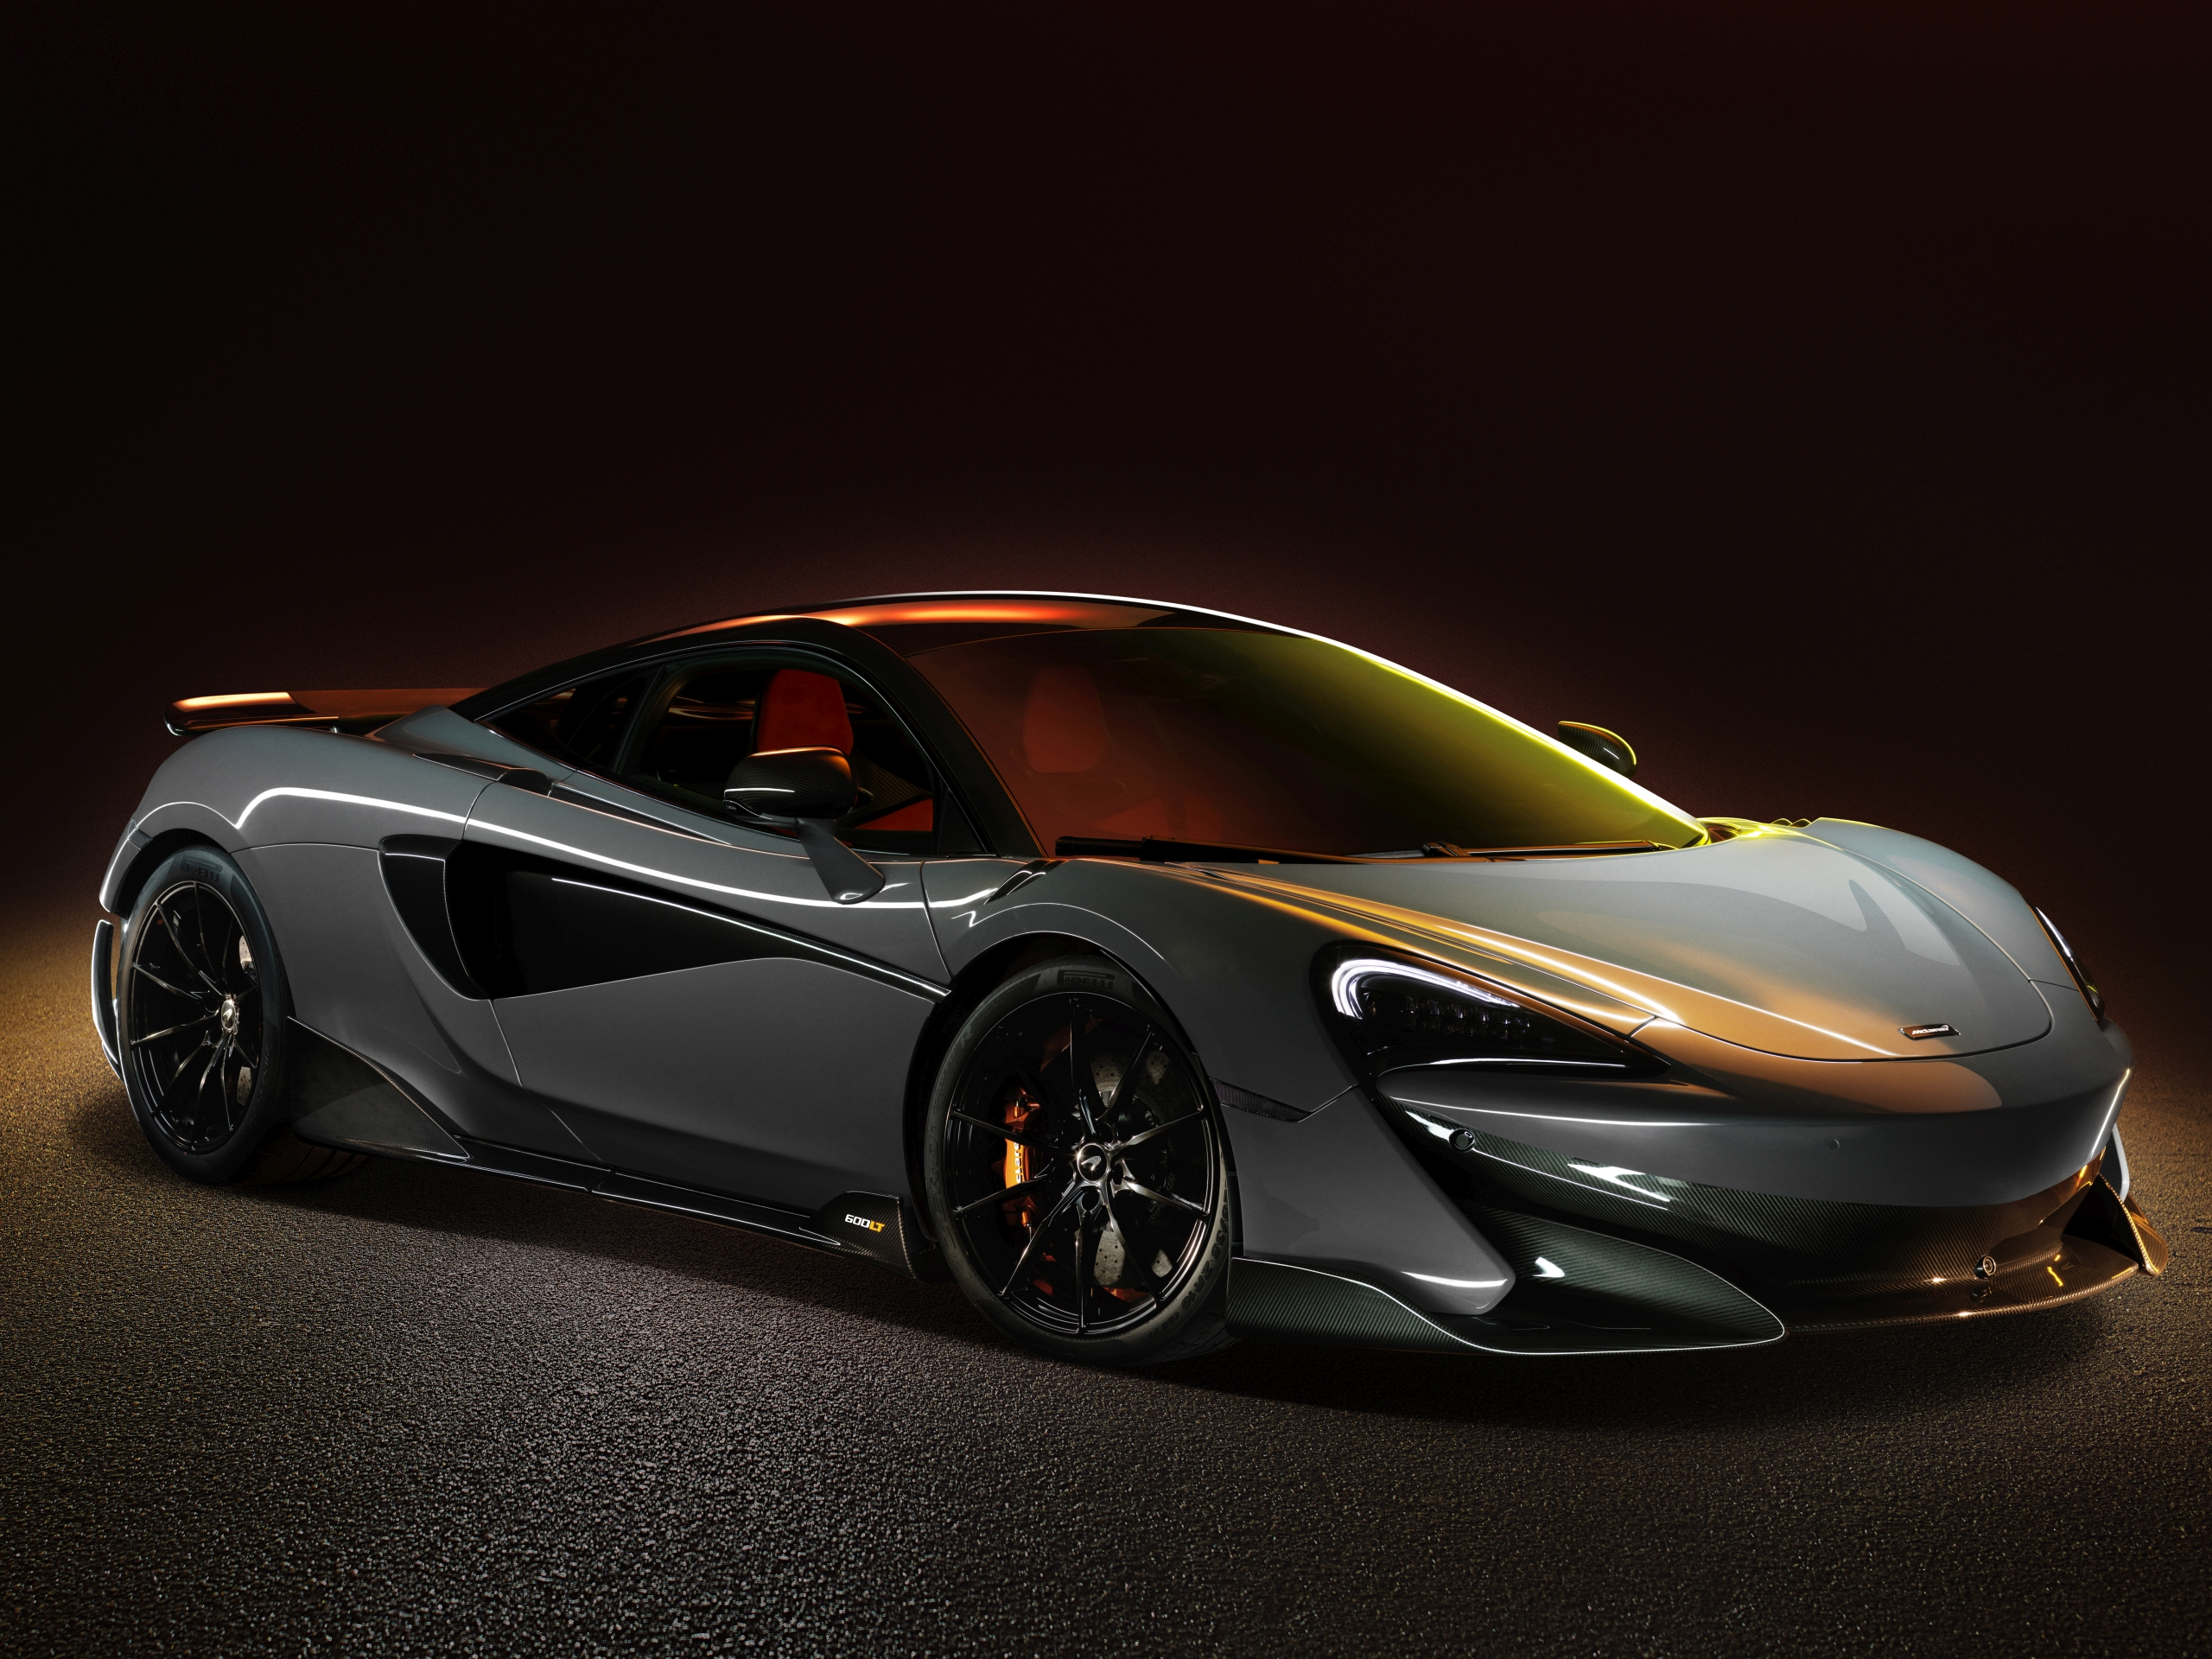 McLaren 600LT revealed - new Longtail with 600 PS